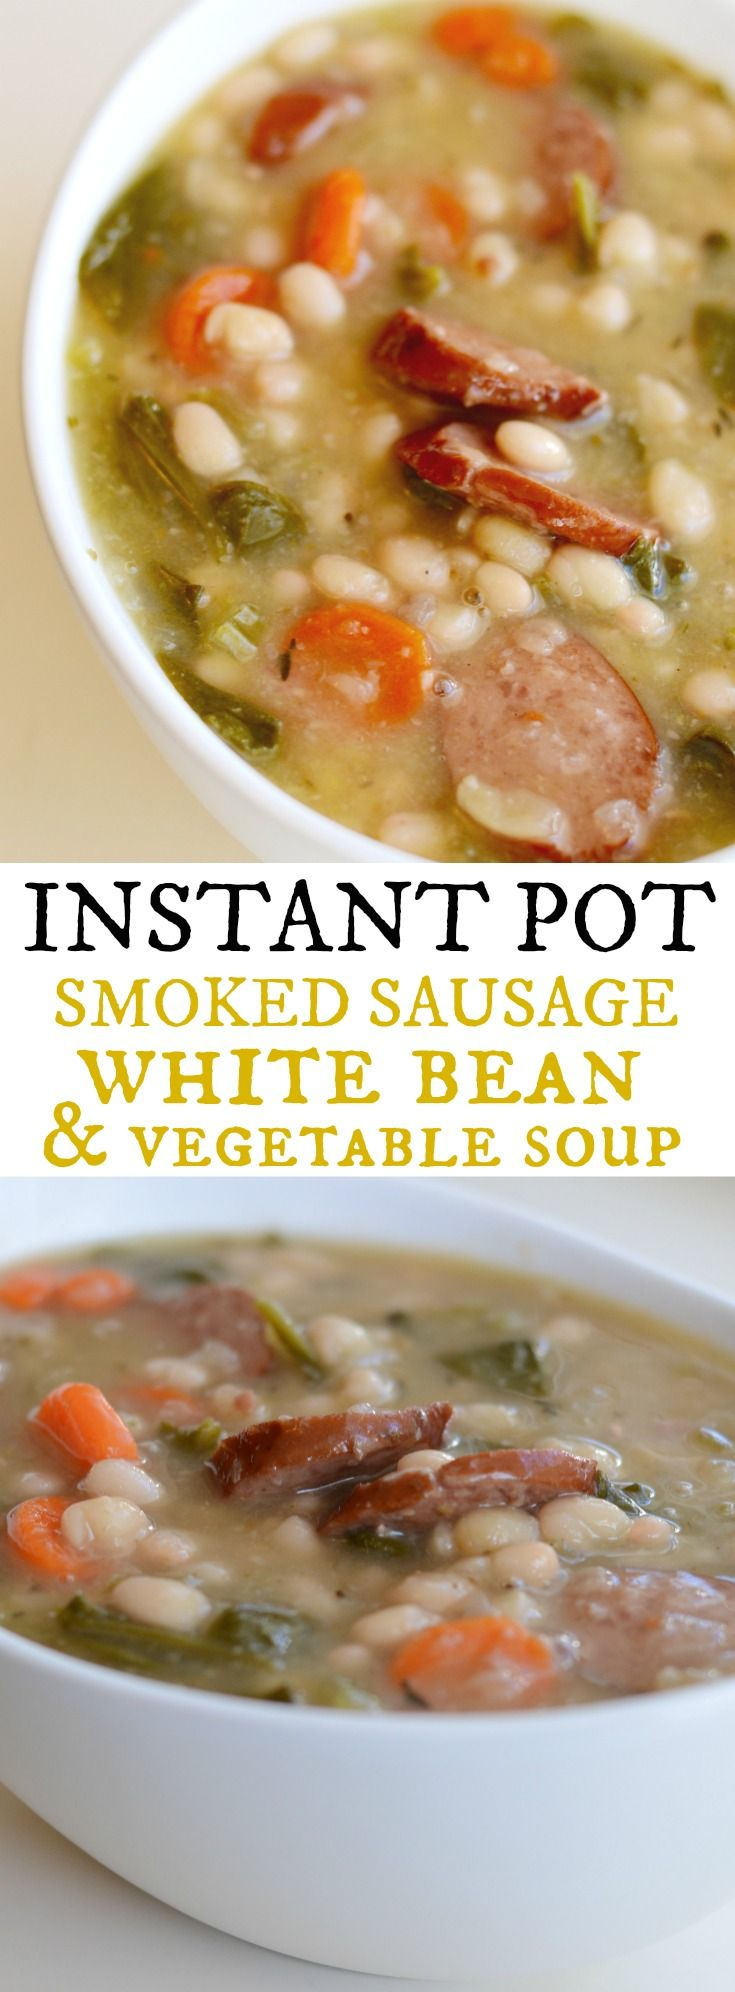 Instant Pot White Bean Soup with Sausage and Vegetables